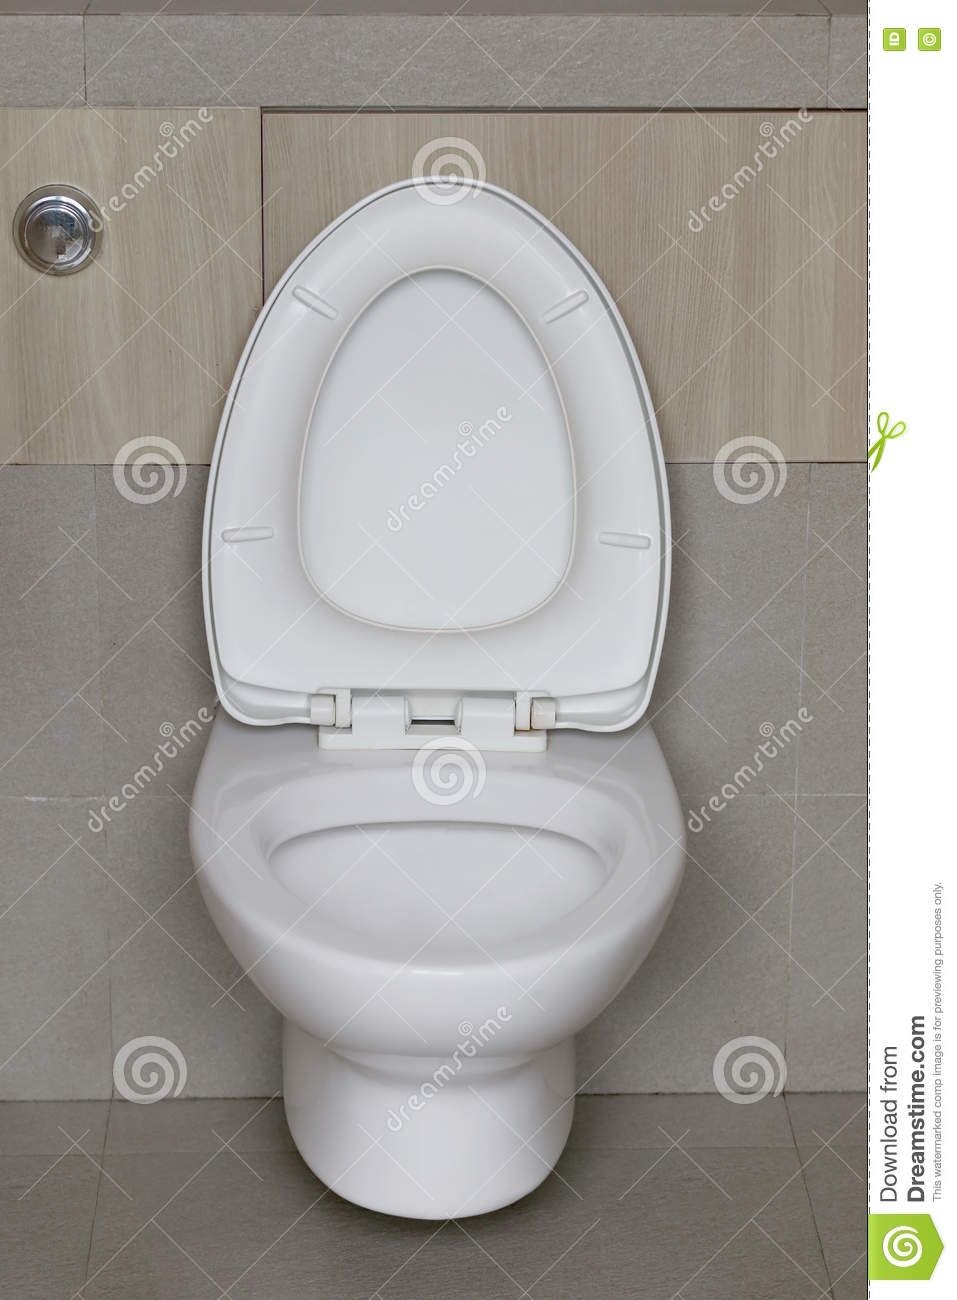 modern toilet bowl in a men bathroom stock photo  image  - bathroom bowl ceramic flush men modern room toilet